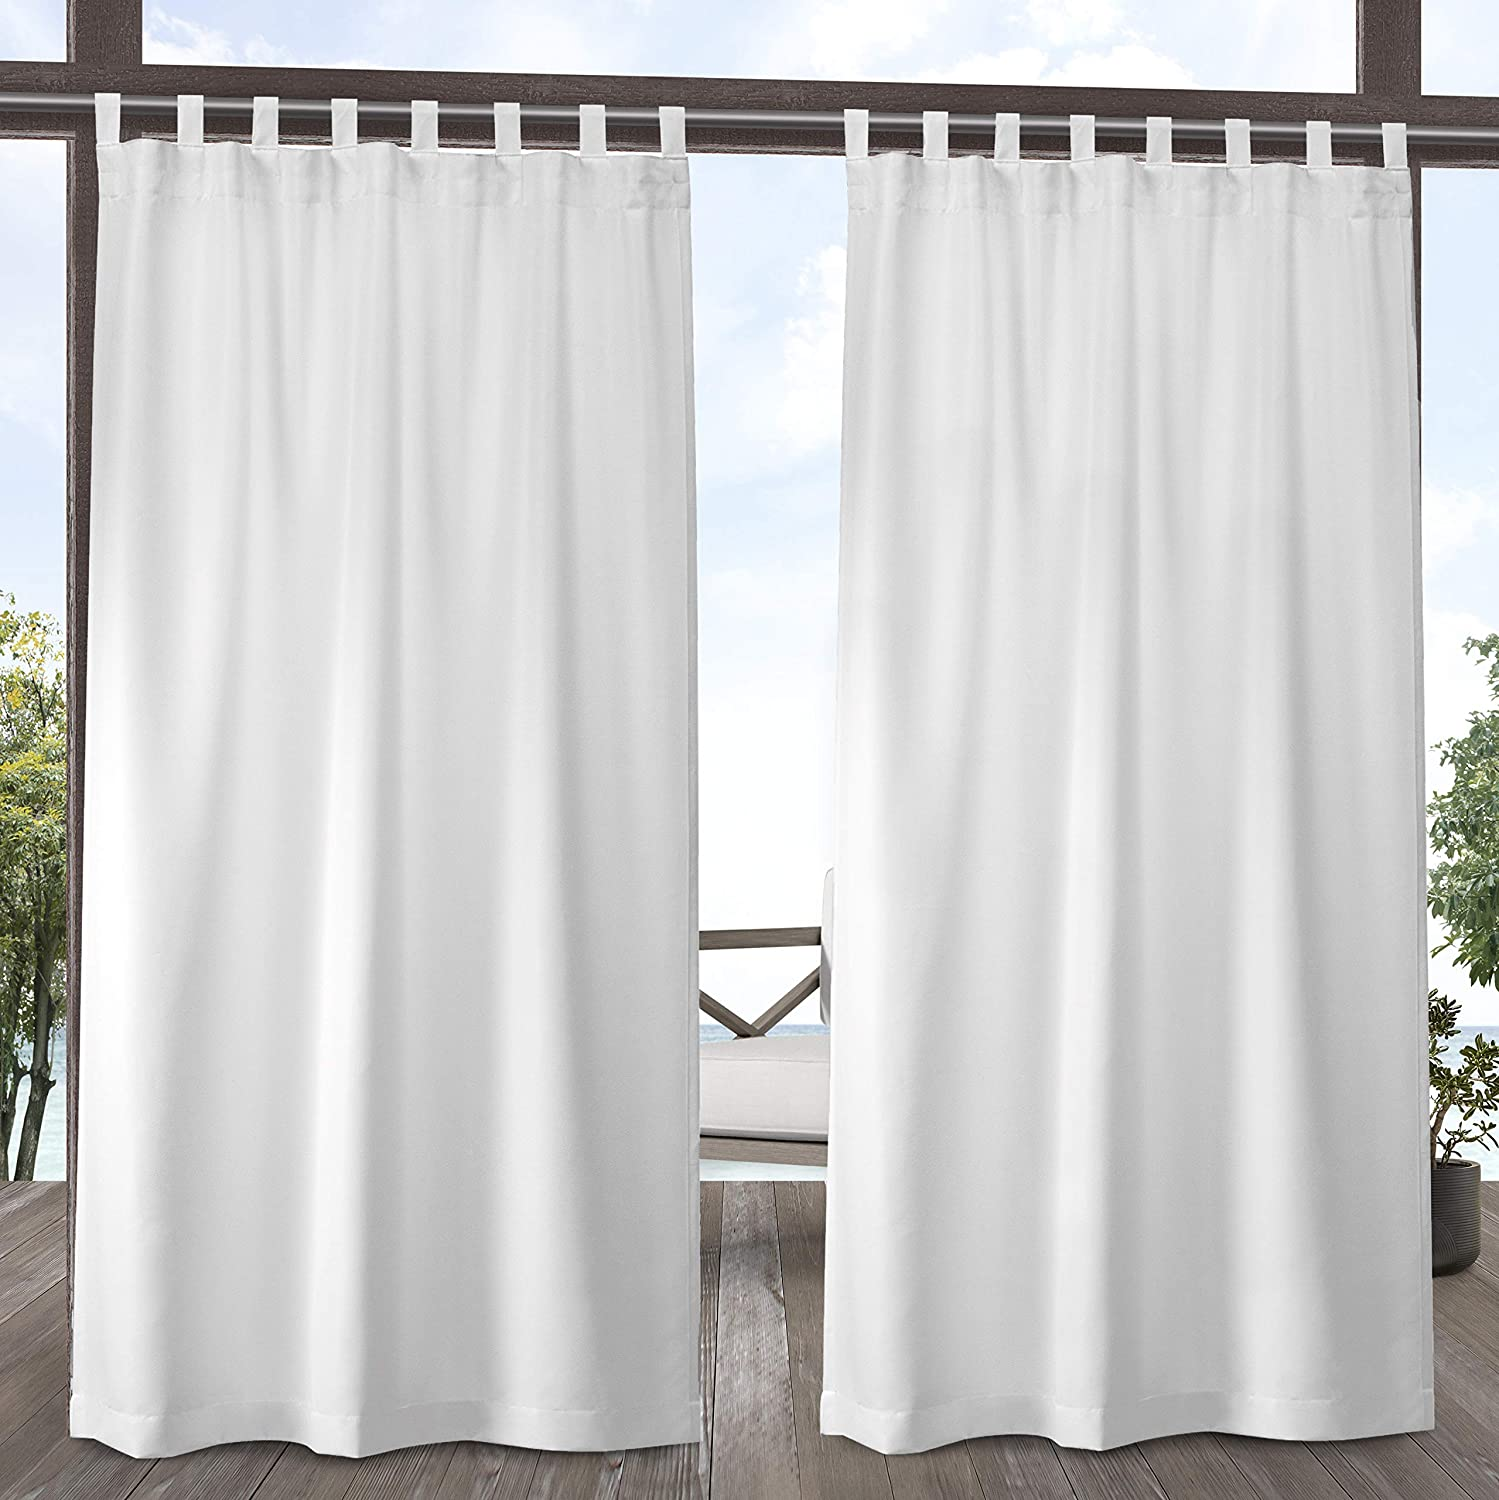 Exclusive Home Curtains Indoor/Outdoor Solid Cabana Tab Top Curtain Panel Pair, 54x96, Winter White,EH8279-01 2-96V